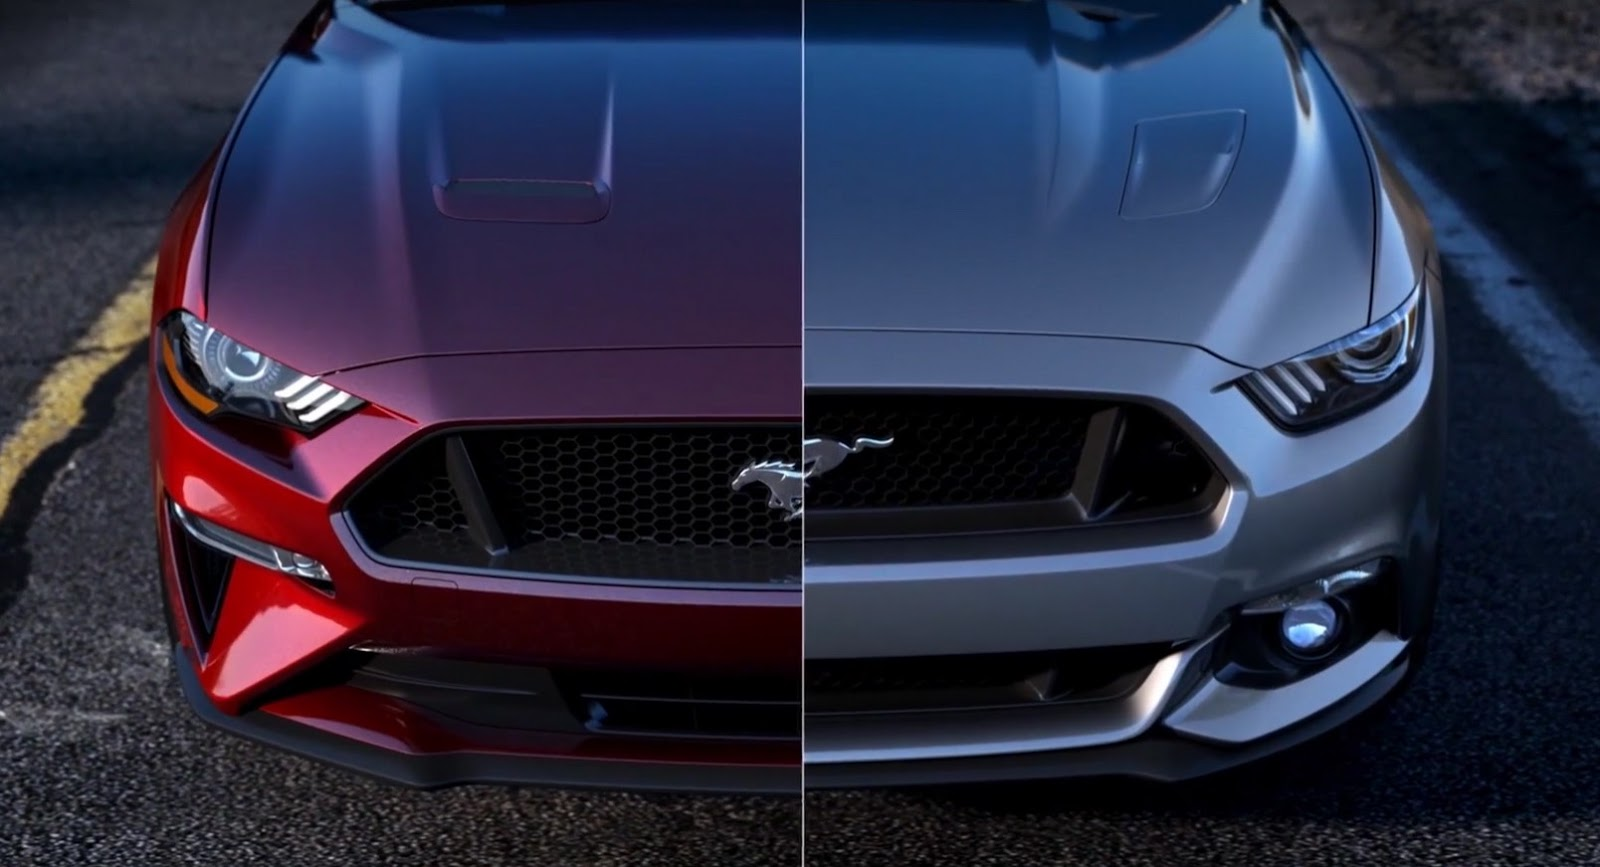 2018 Vs 2017 Ford Mustang: Poll & Photo Comparison | Carscoops